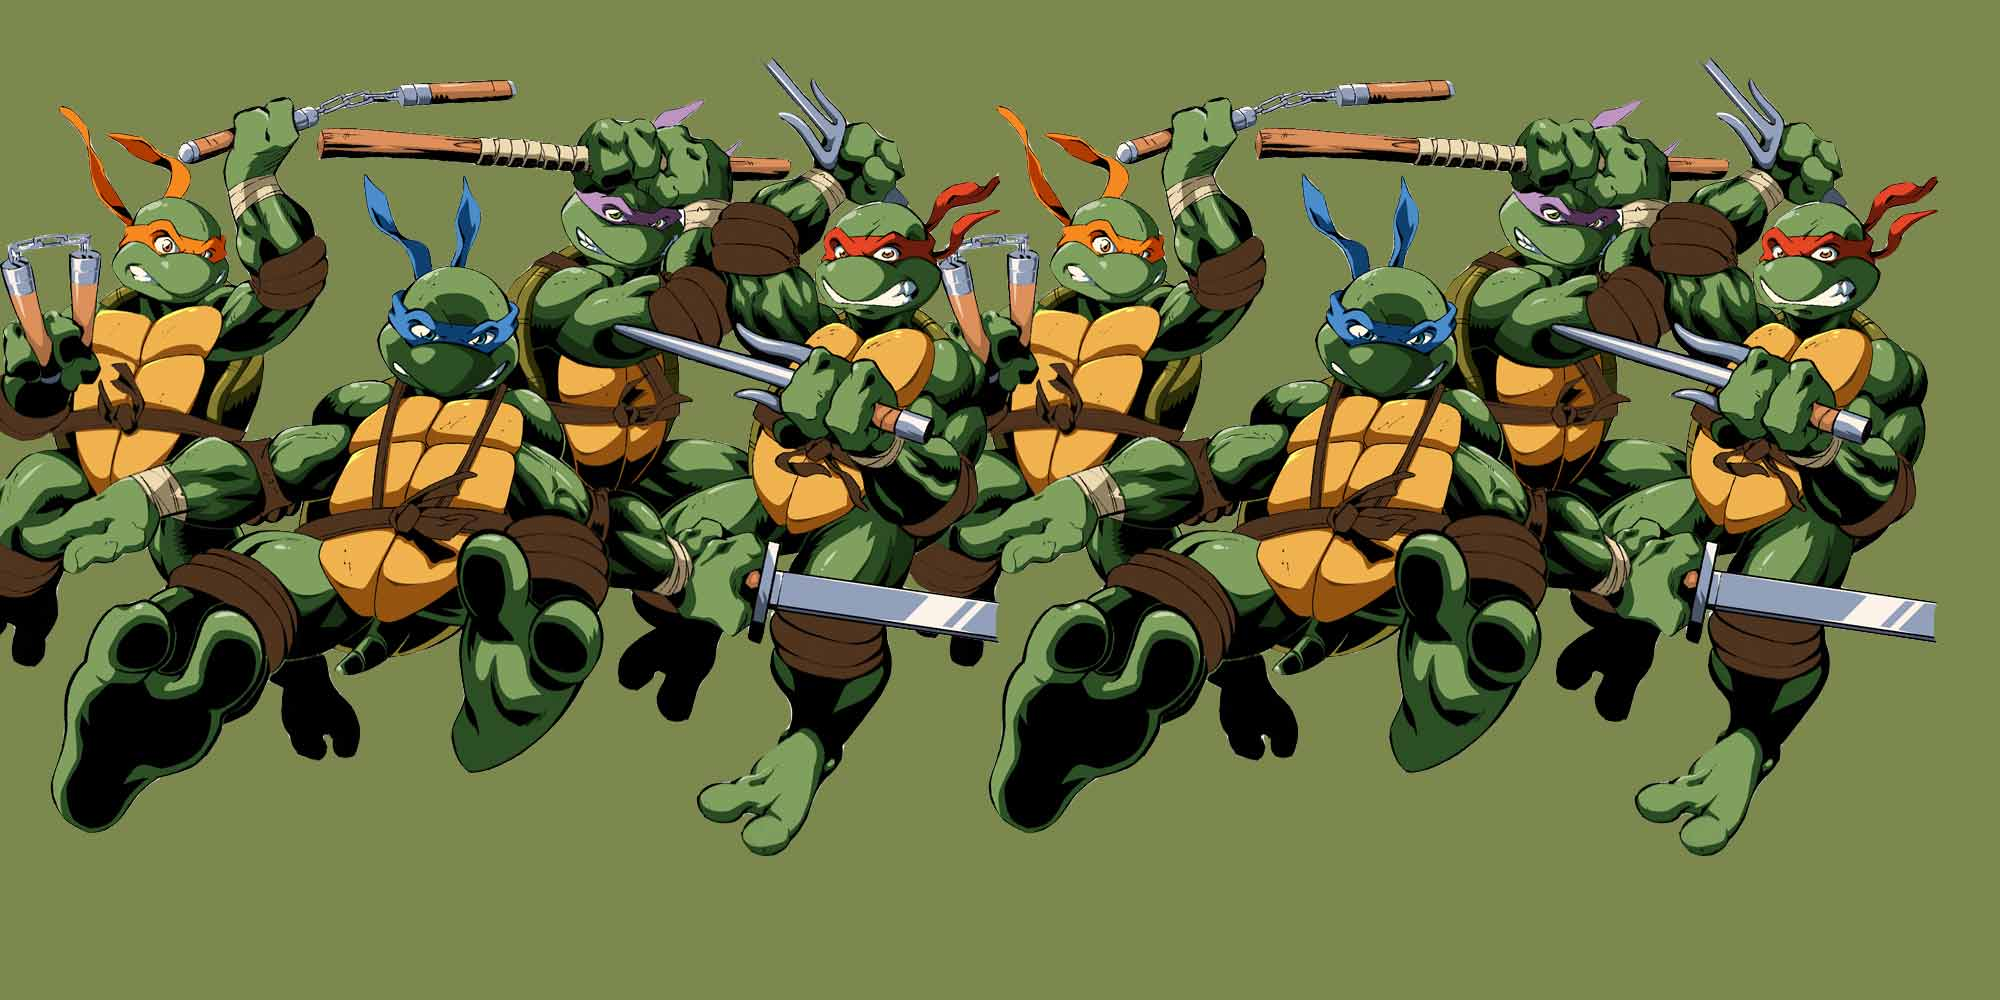 Raphael  Teenage Mutant Ninja Turtles Wiki  FANDOM powered by Wikia